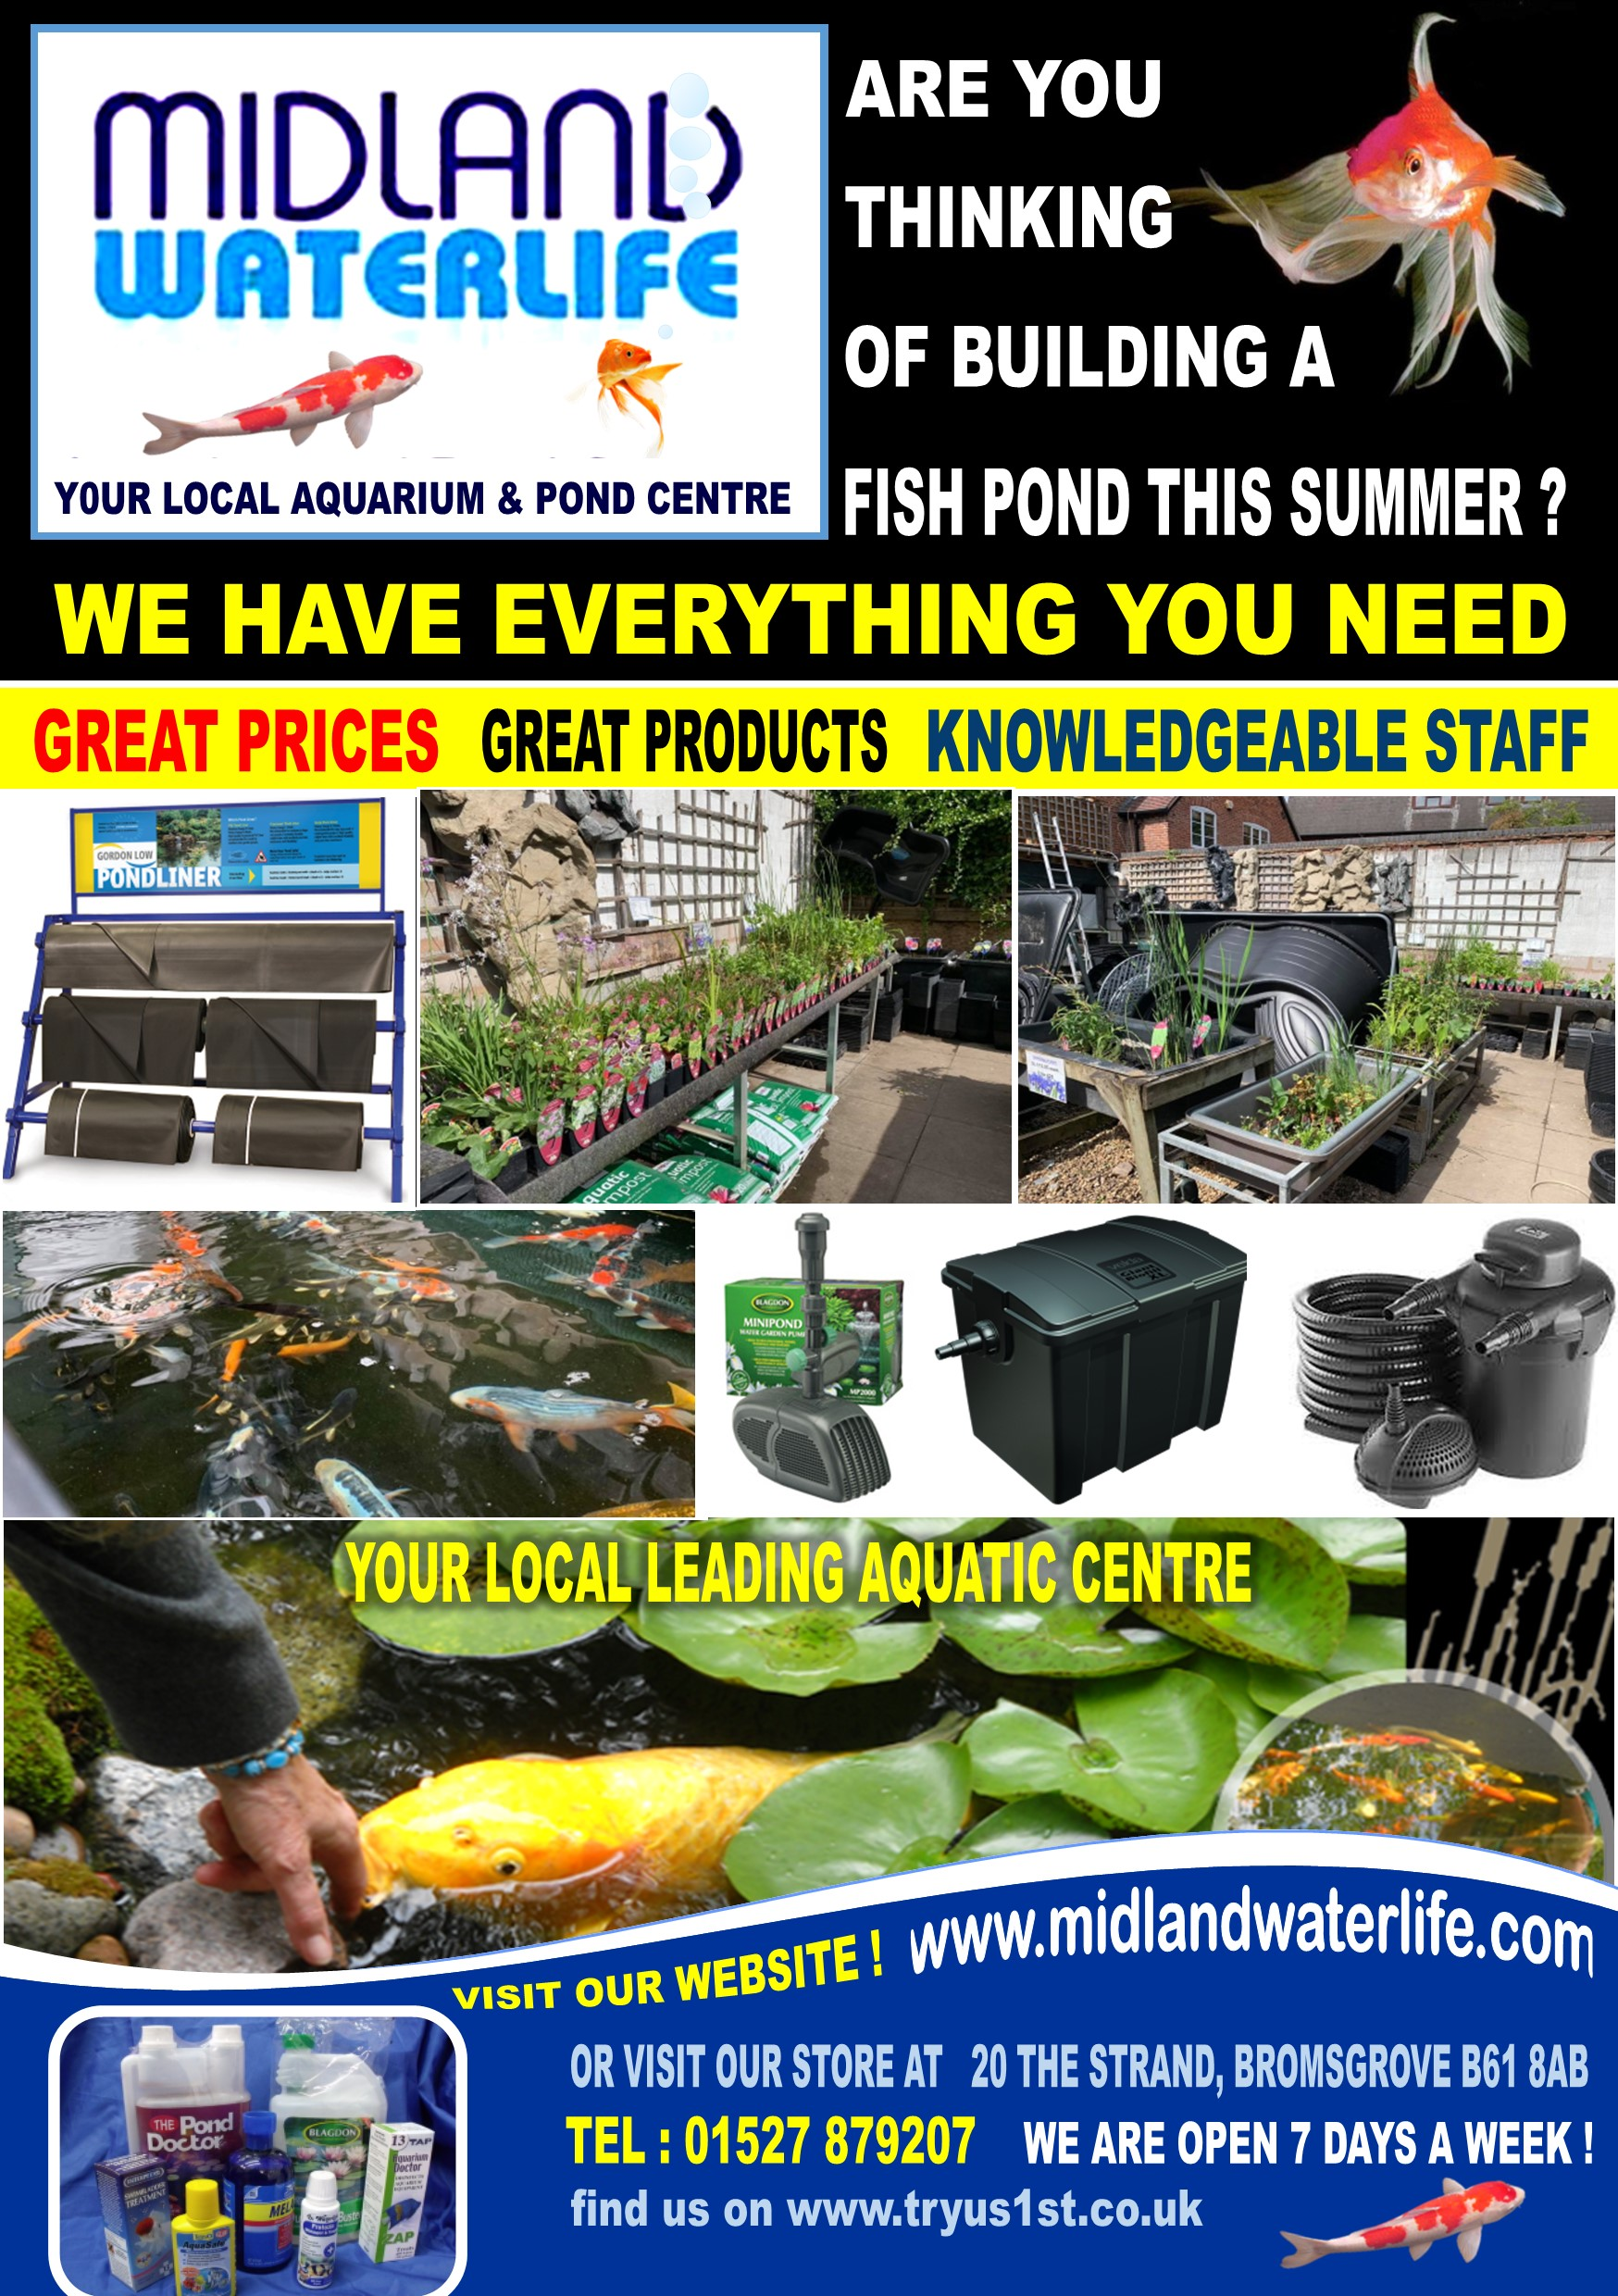 Midland Waterlife aquatics and pondlife bromsgrove - Try us 1st Local Traders